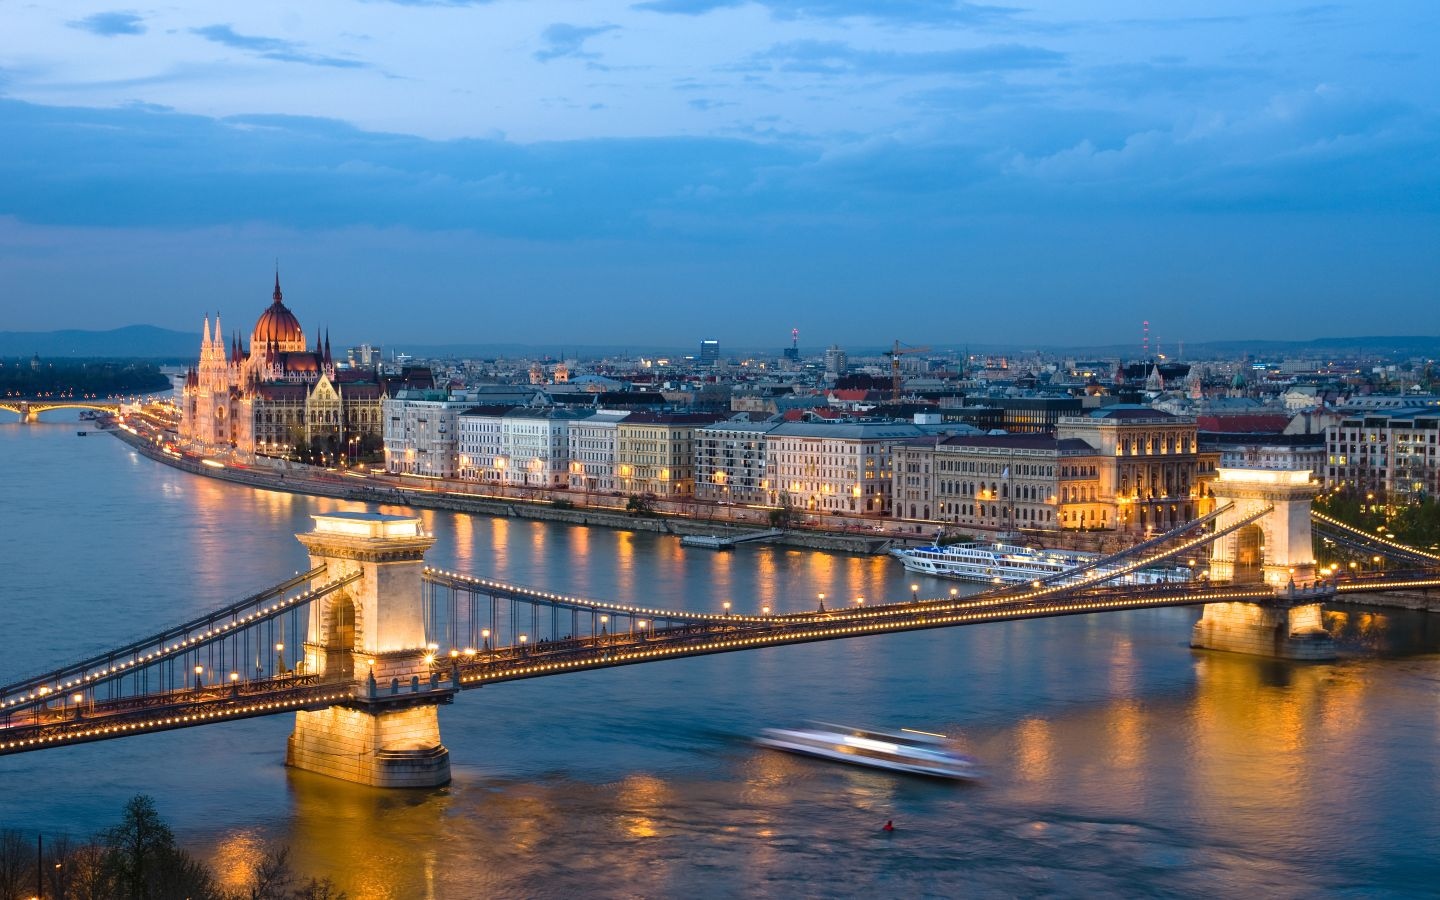 City View of Budapest, Hungary